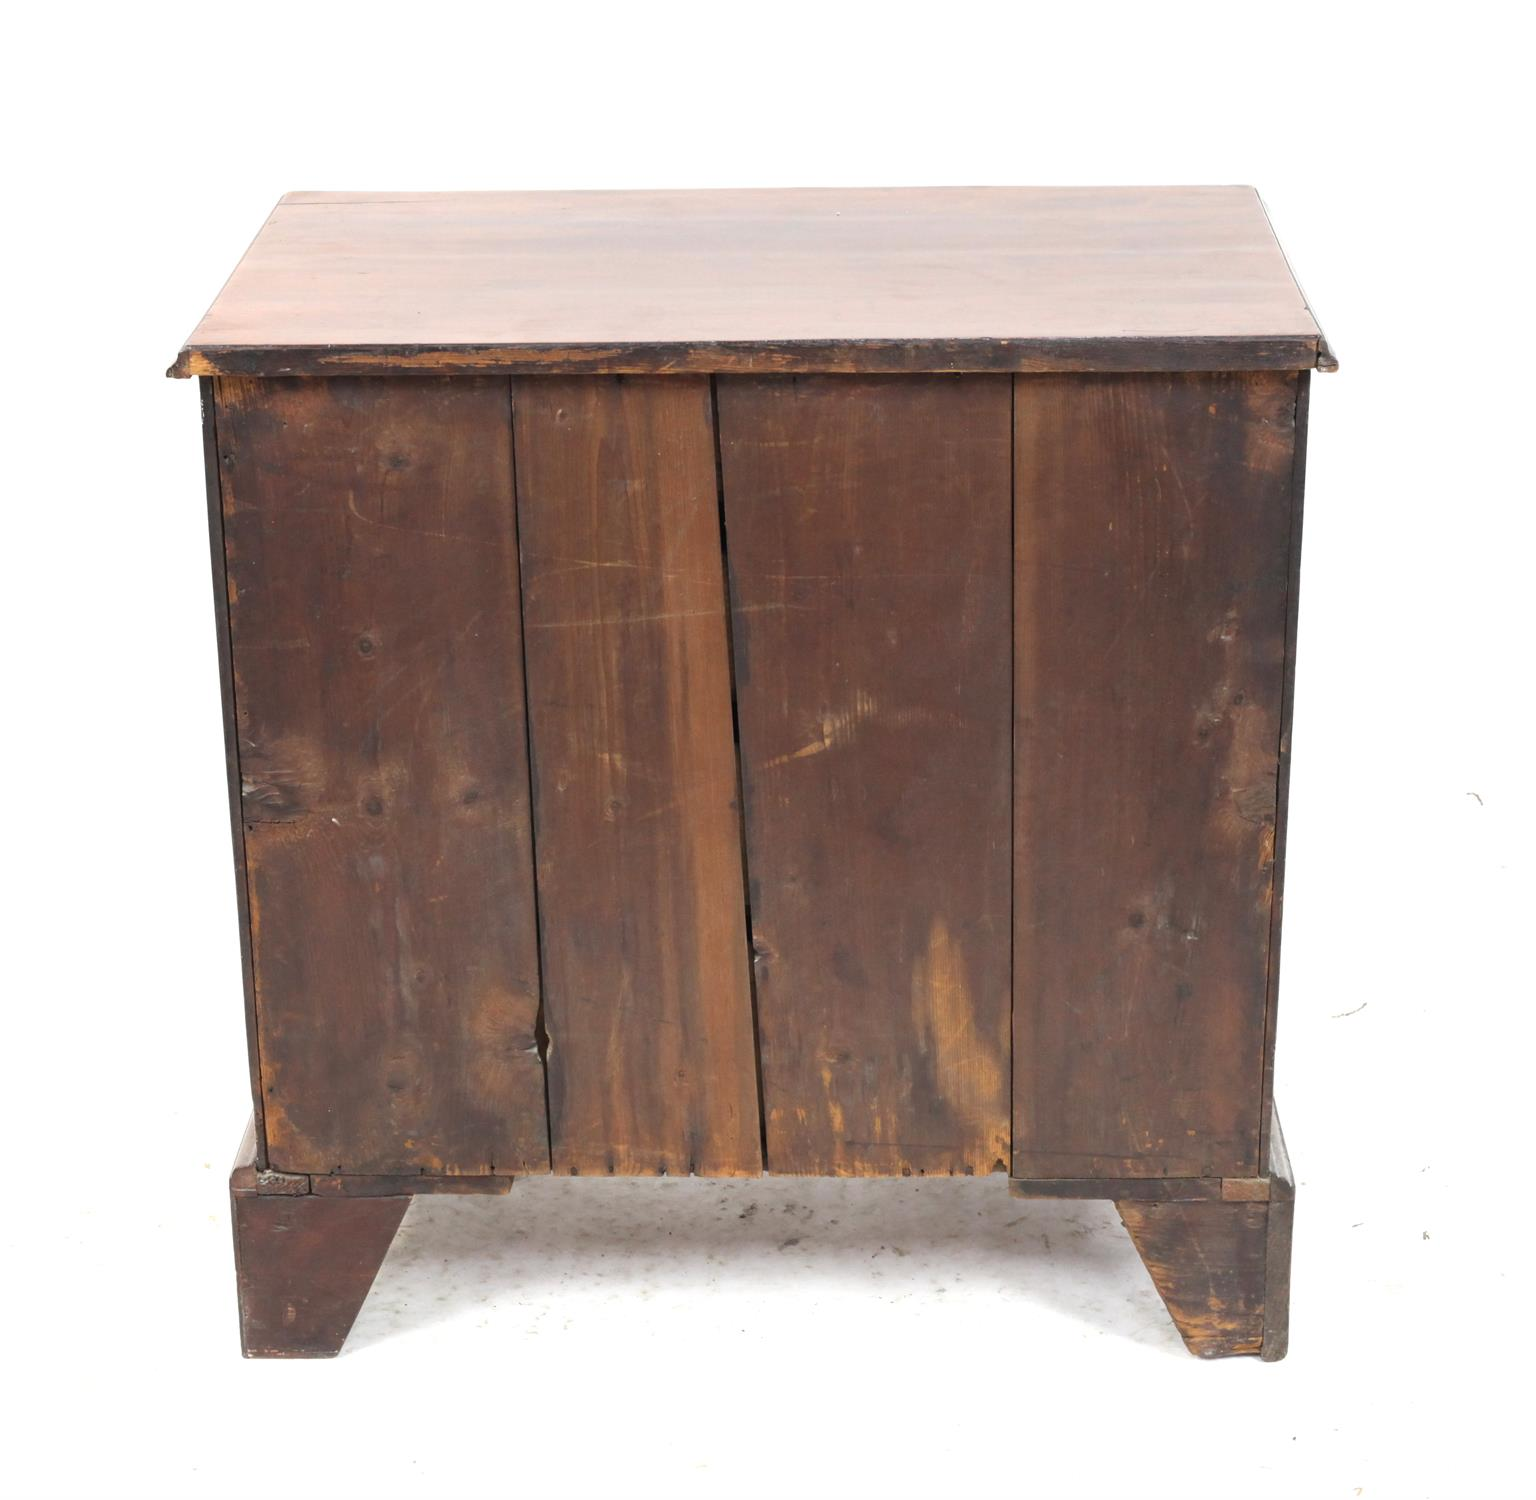 19th century mahogany chest of four graduated drawers on bracket feet, H76 x W75 x D44cm - Image 4 of 4